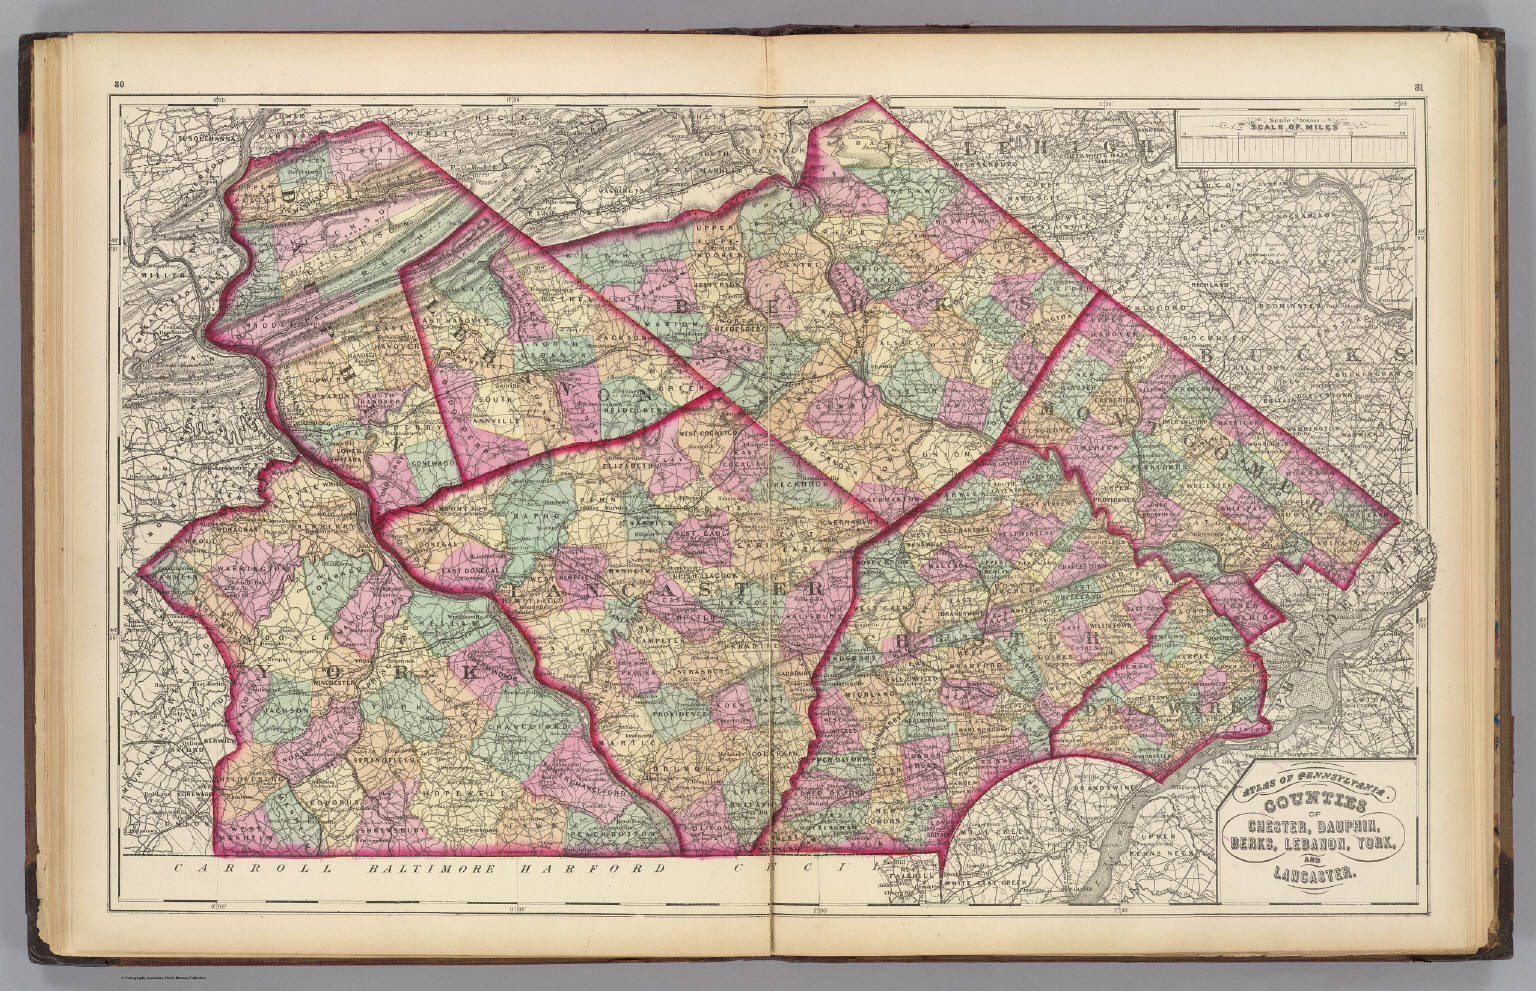 Chester, Dauphin, Berks, Lebanon, York, Lancaster counties. - David on ronks pa map, map lancaster pa attractions map, warwick pa map, lititz pa map, lancaster co map, pa school district map, lancaster county municipalities, streets of new holland pa map, lancaster ca zip code map, bucks county pa historical map, lancaster city street map,